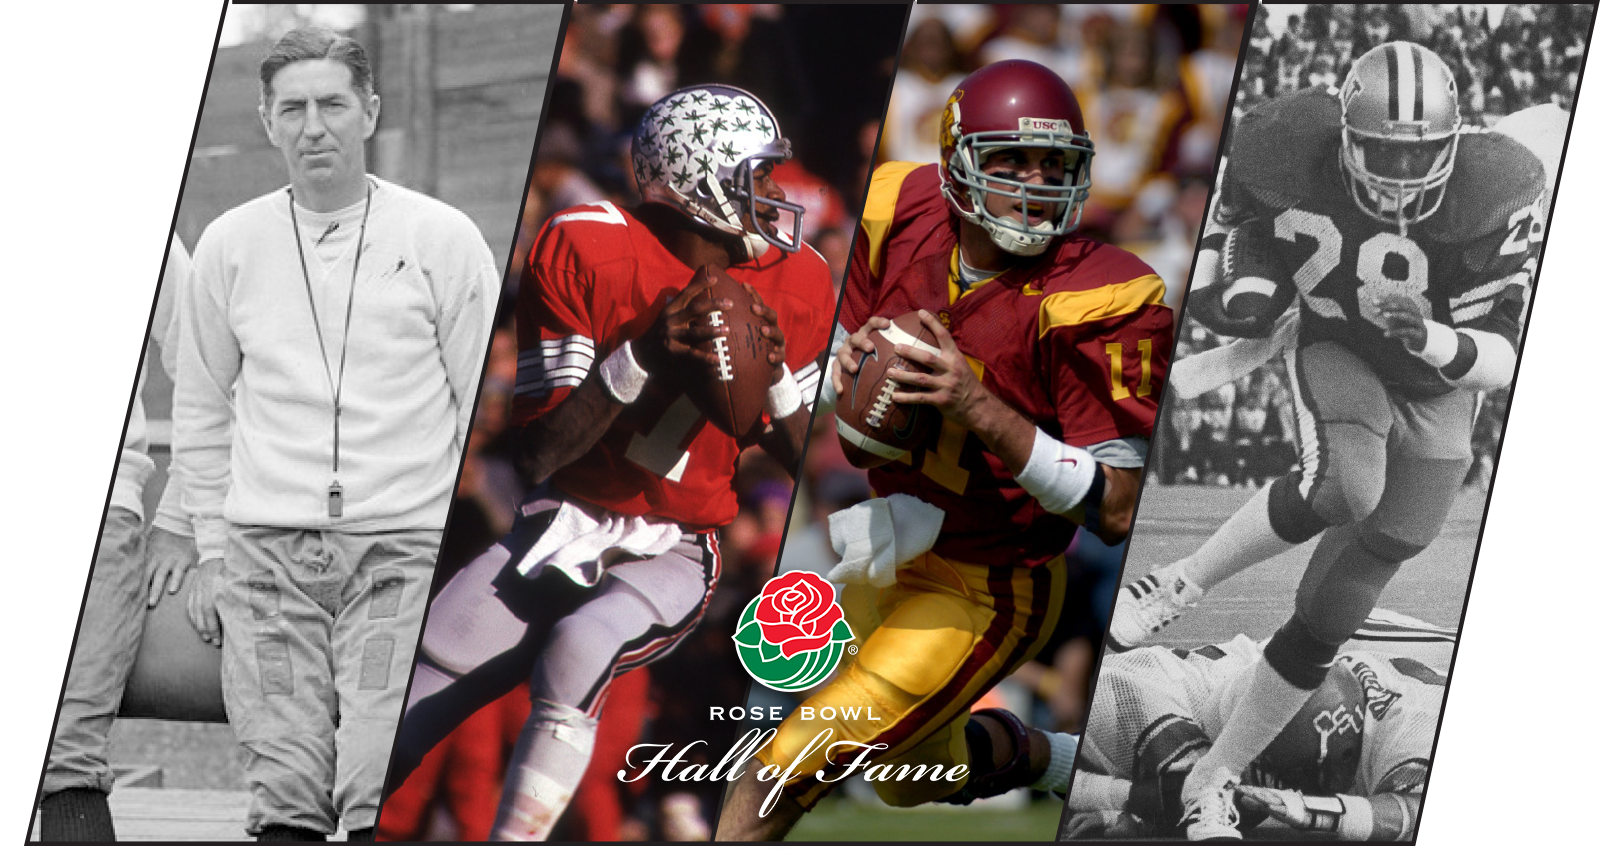 Rose Bowl Hall of Fame Class of 2019